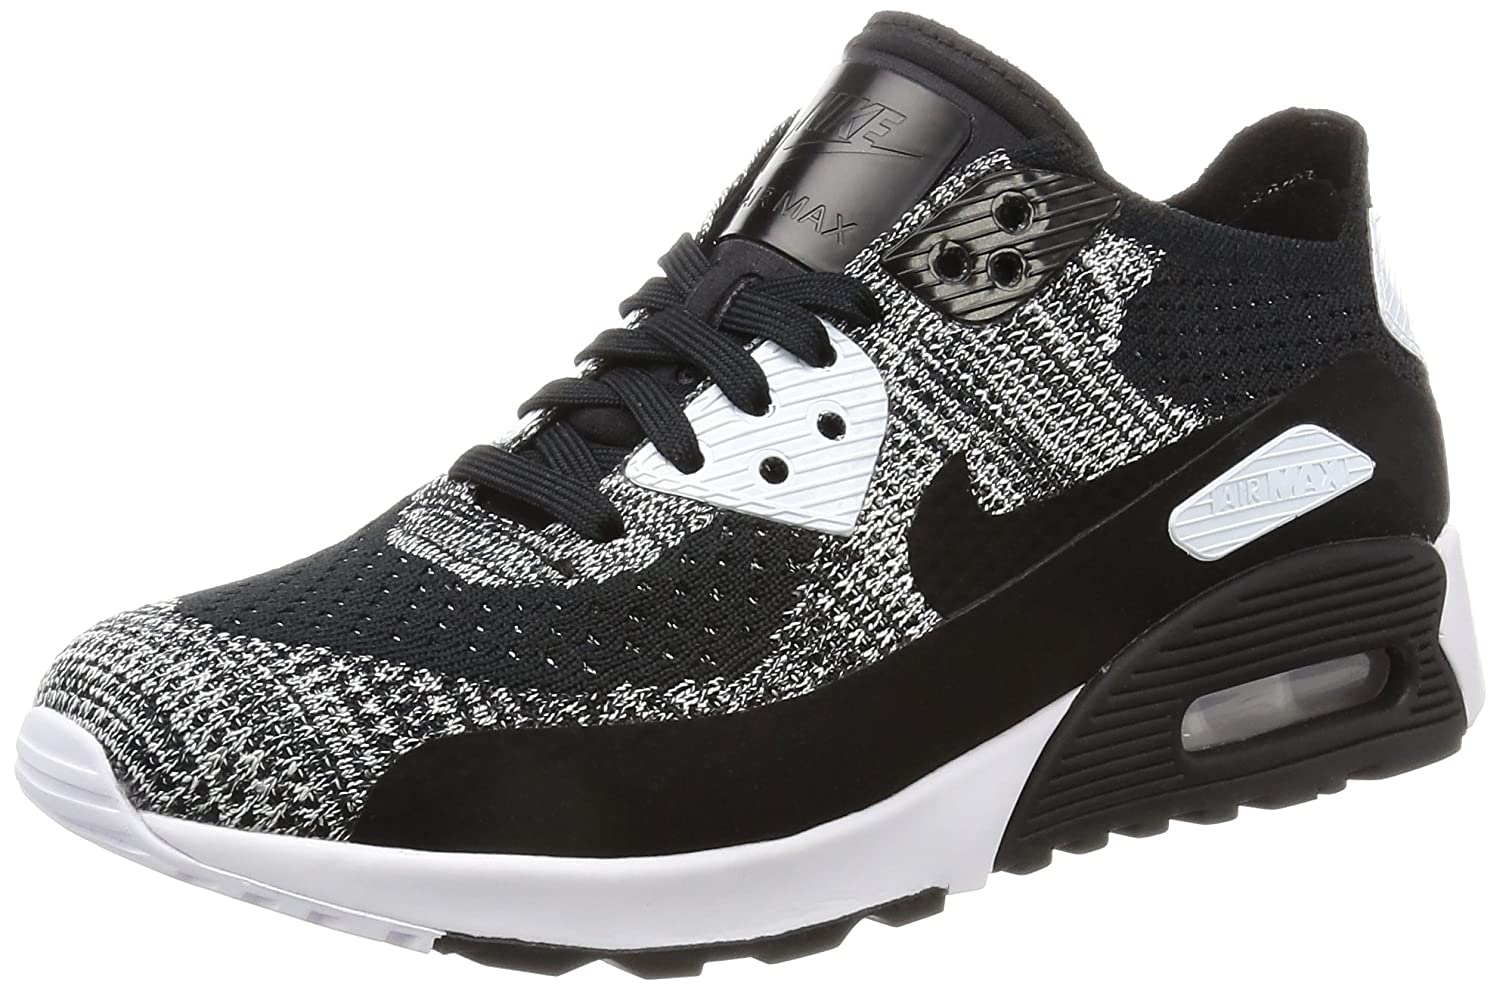 NIKE Women's Air Max 90 Ultra 2.0 Flyknit Casual Shoe B06XWP5N3Y 9 B(M) US|Black / White-anthracite